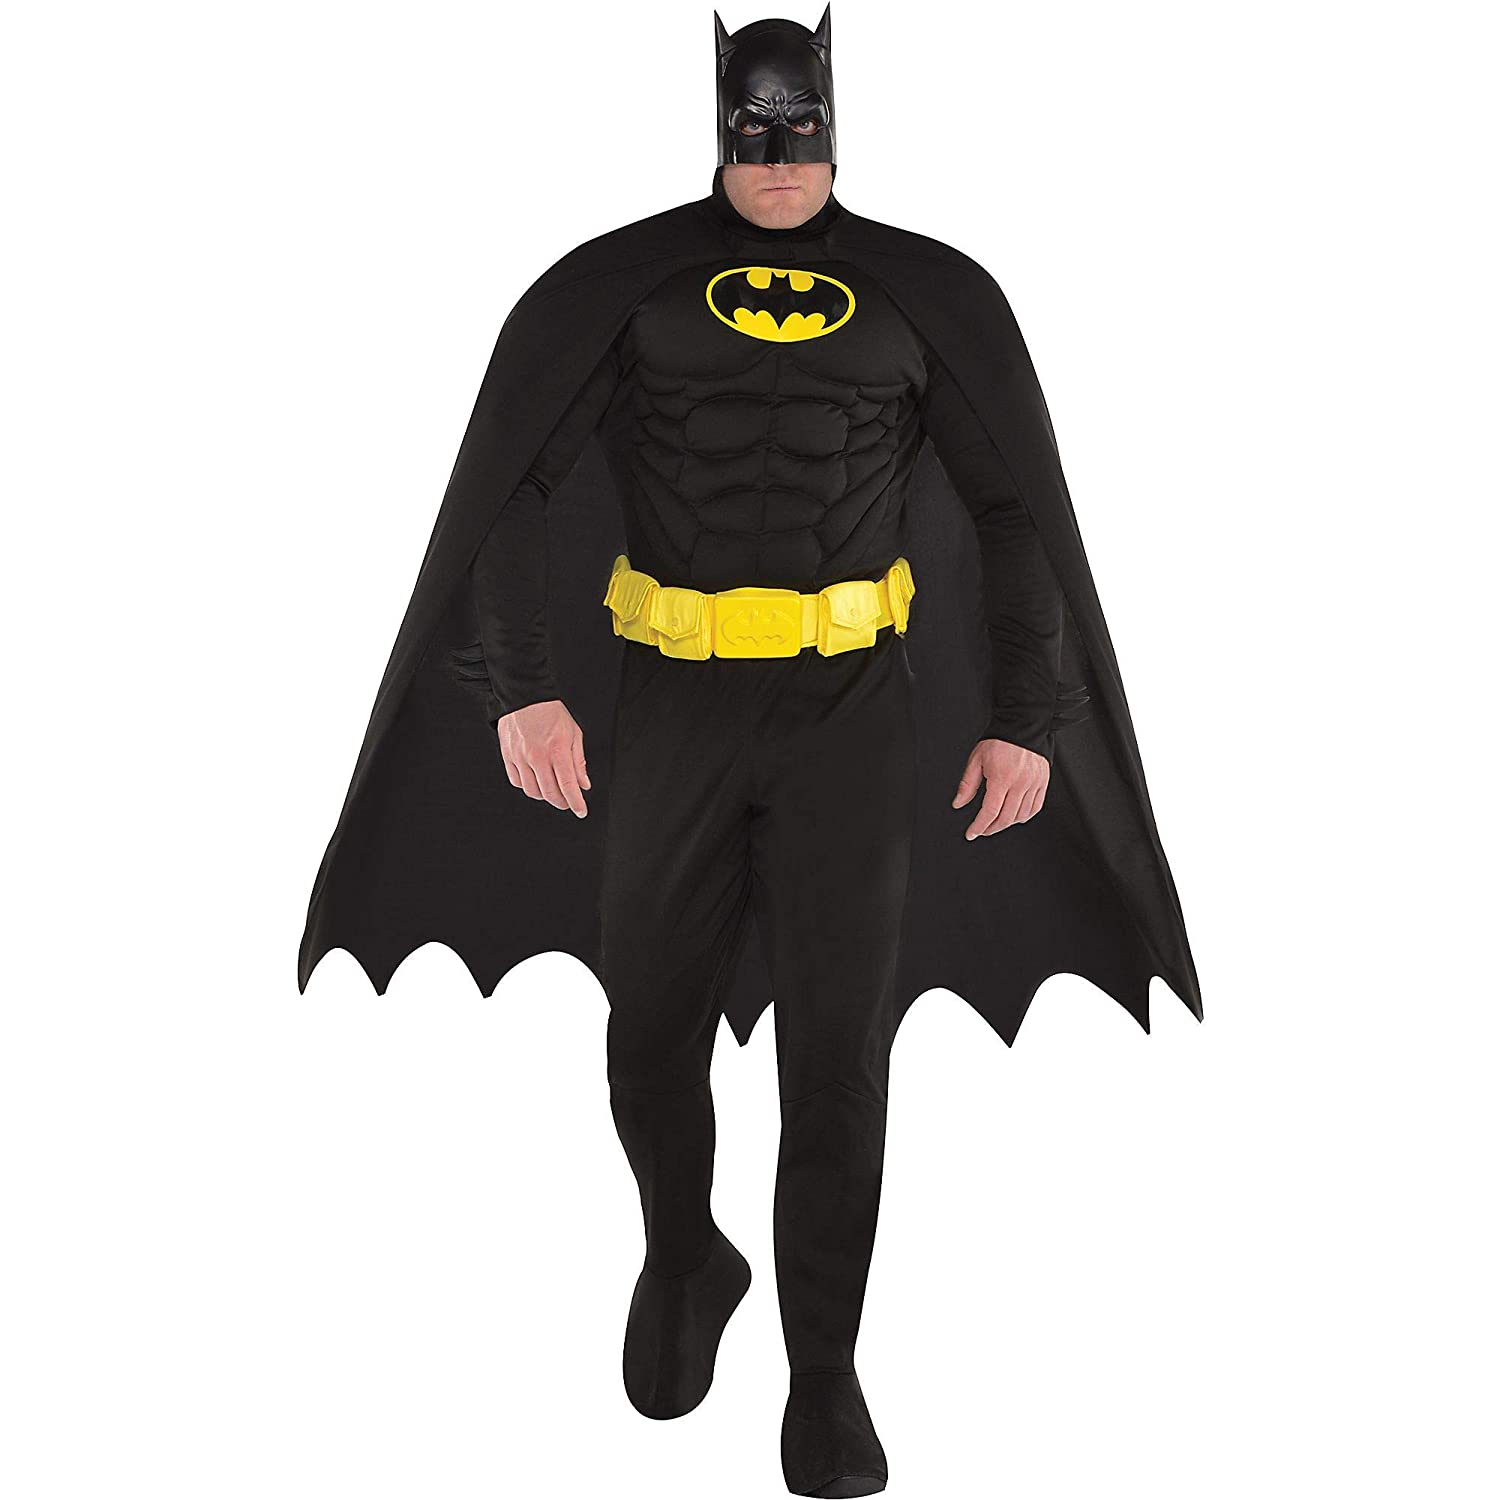 Amazon.com: Costumes USA Batman Muscle Costume for Adults ...